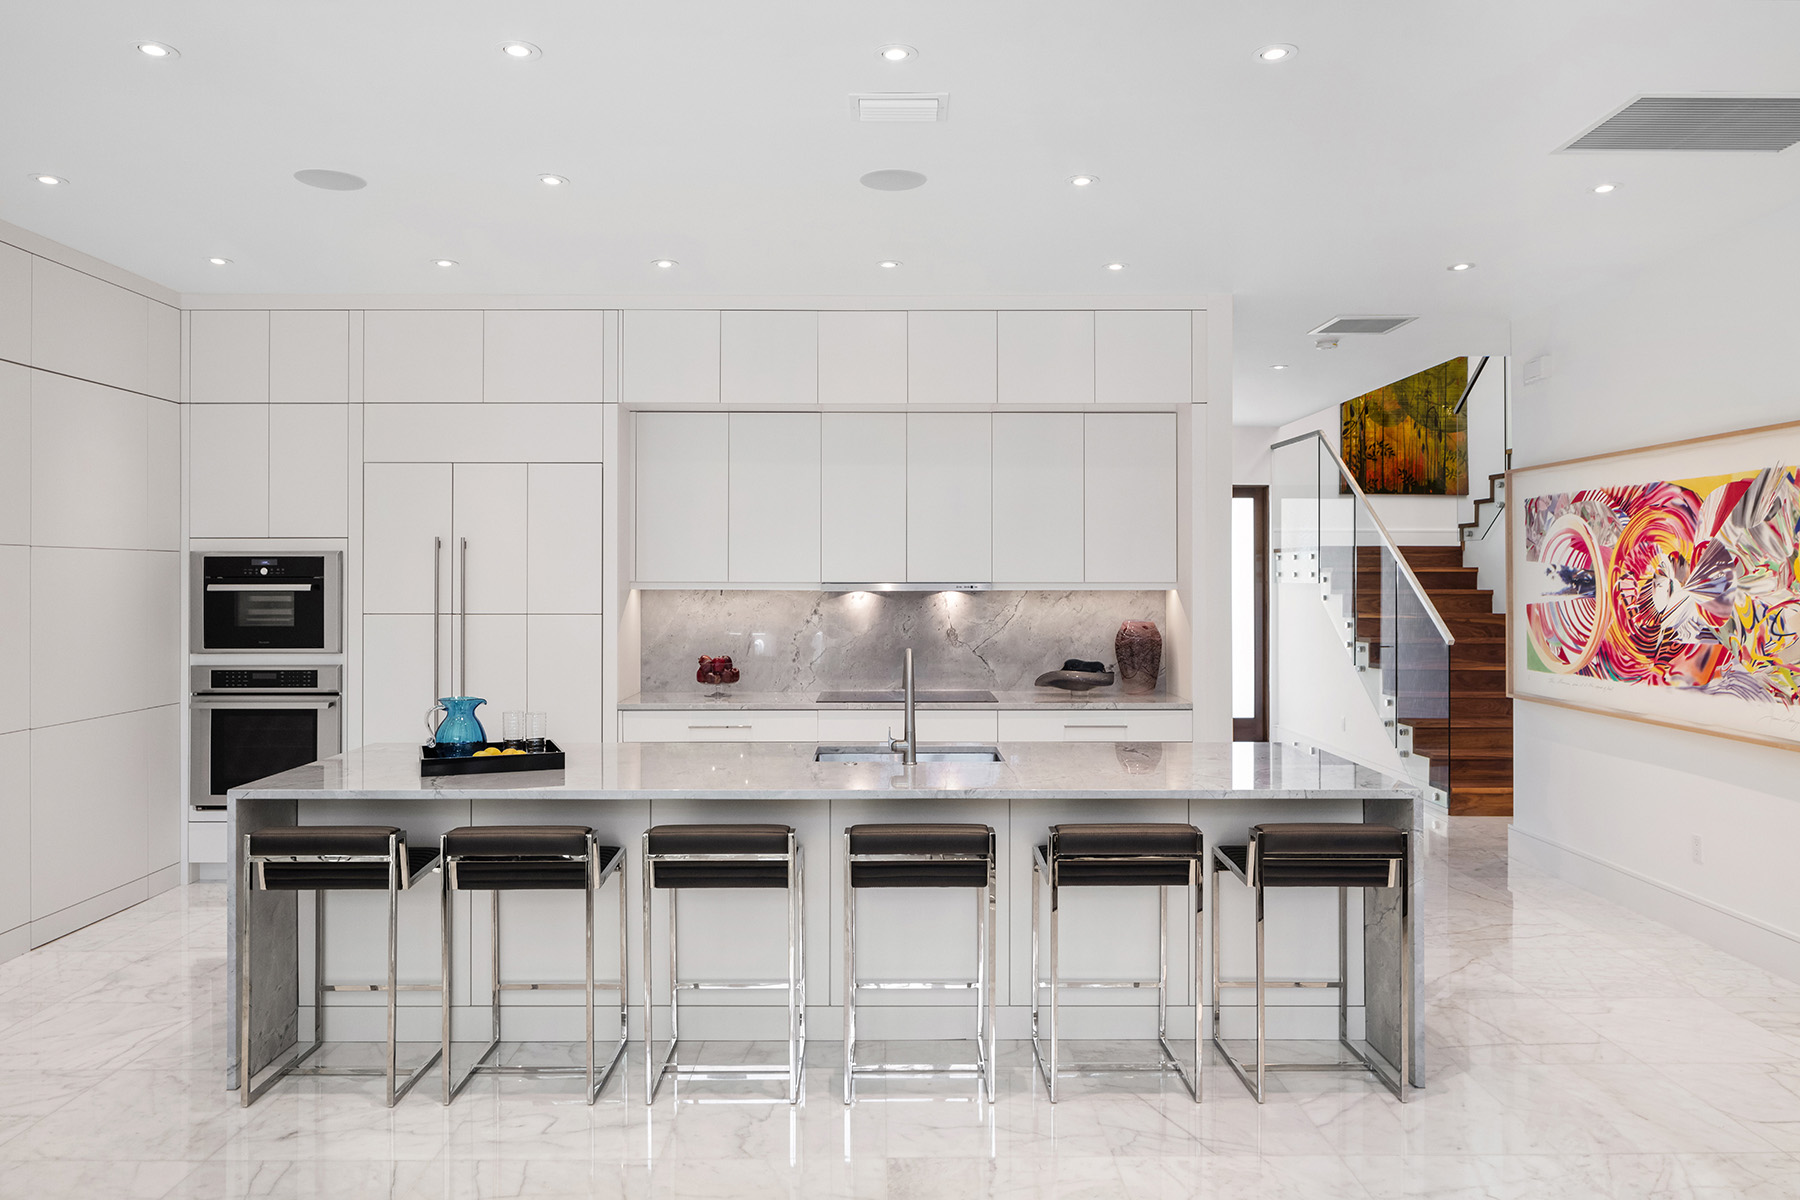 Architecture and aesthetics in kitchen concept planning